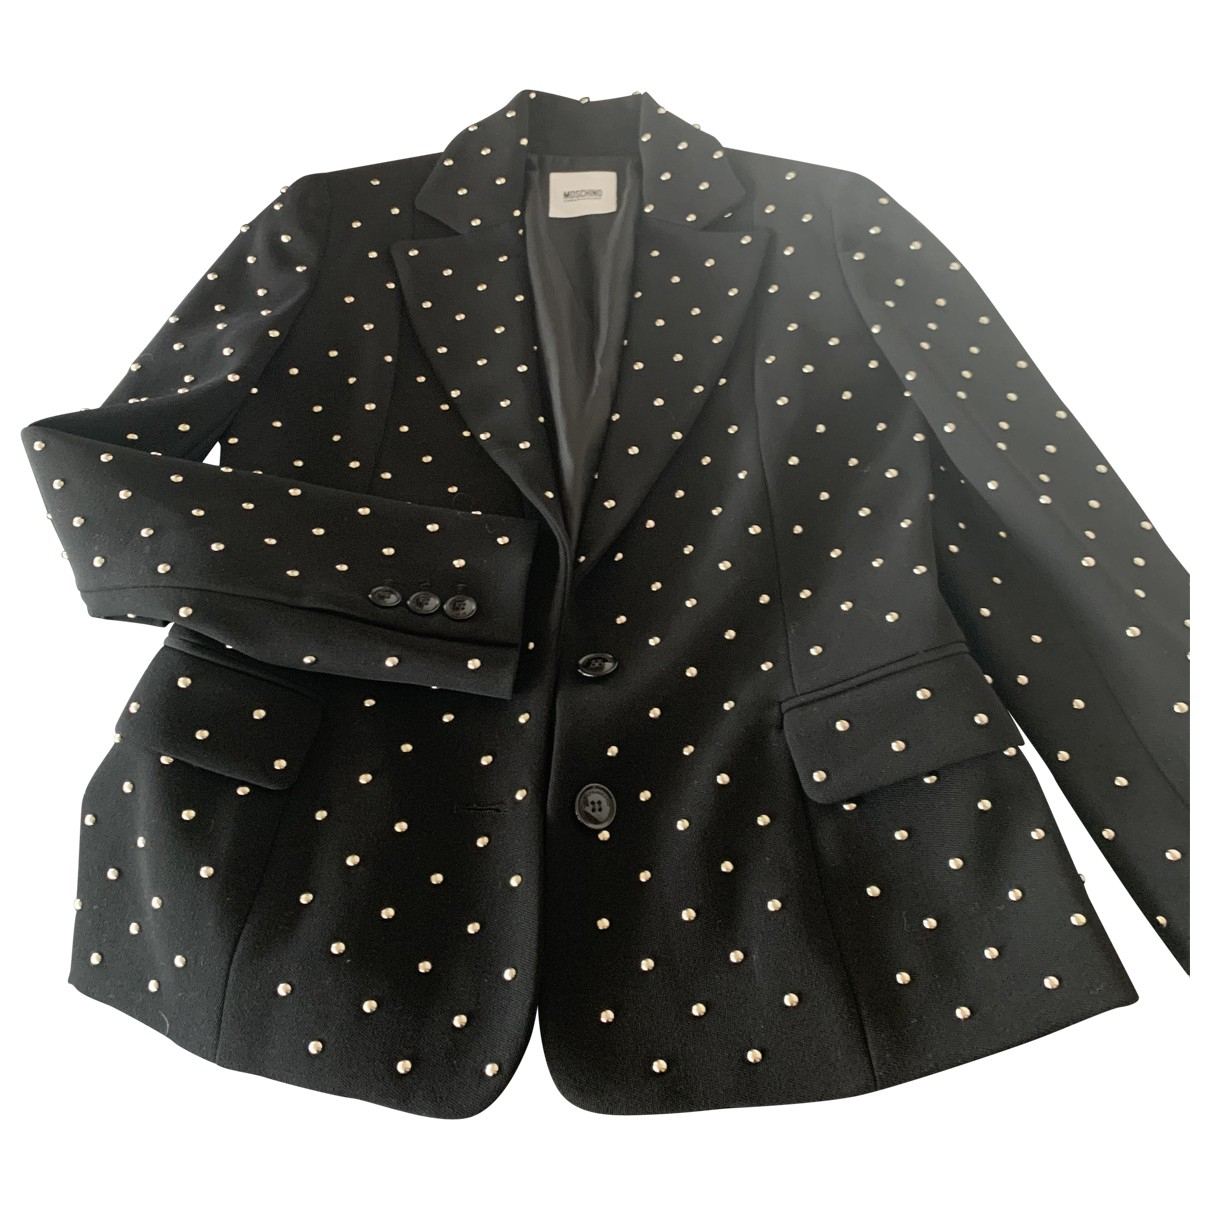 Moschino Cheap And Chic \N Black Wool jacket for Women 40 IT